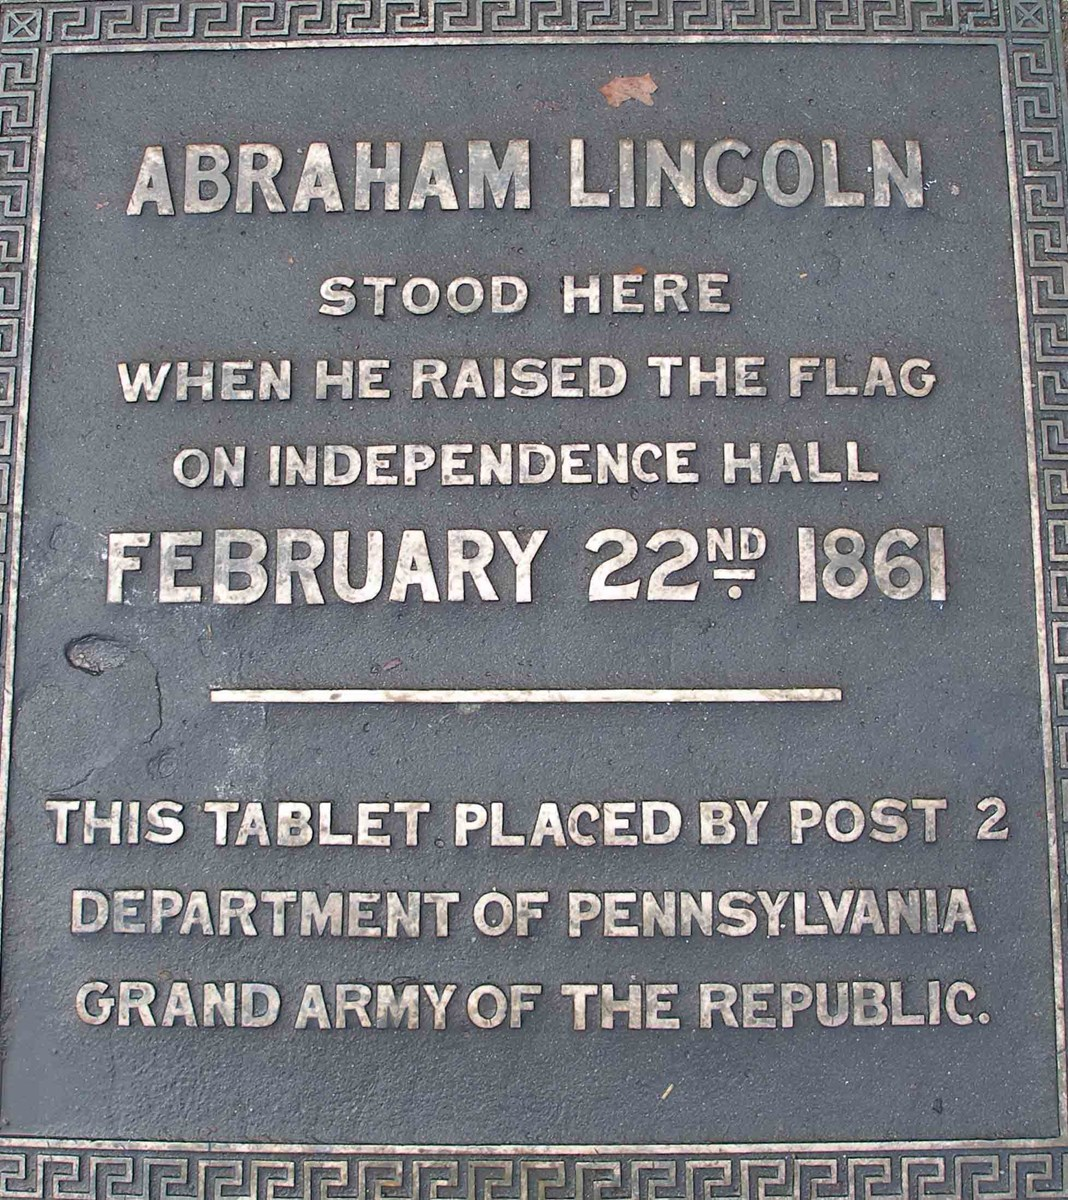 Dedication to Abraham Lincoln